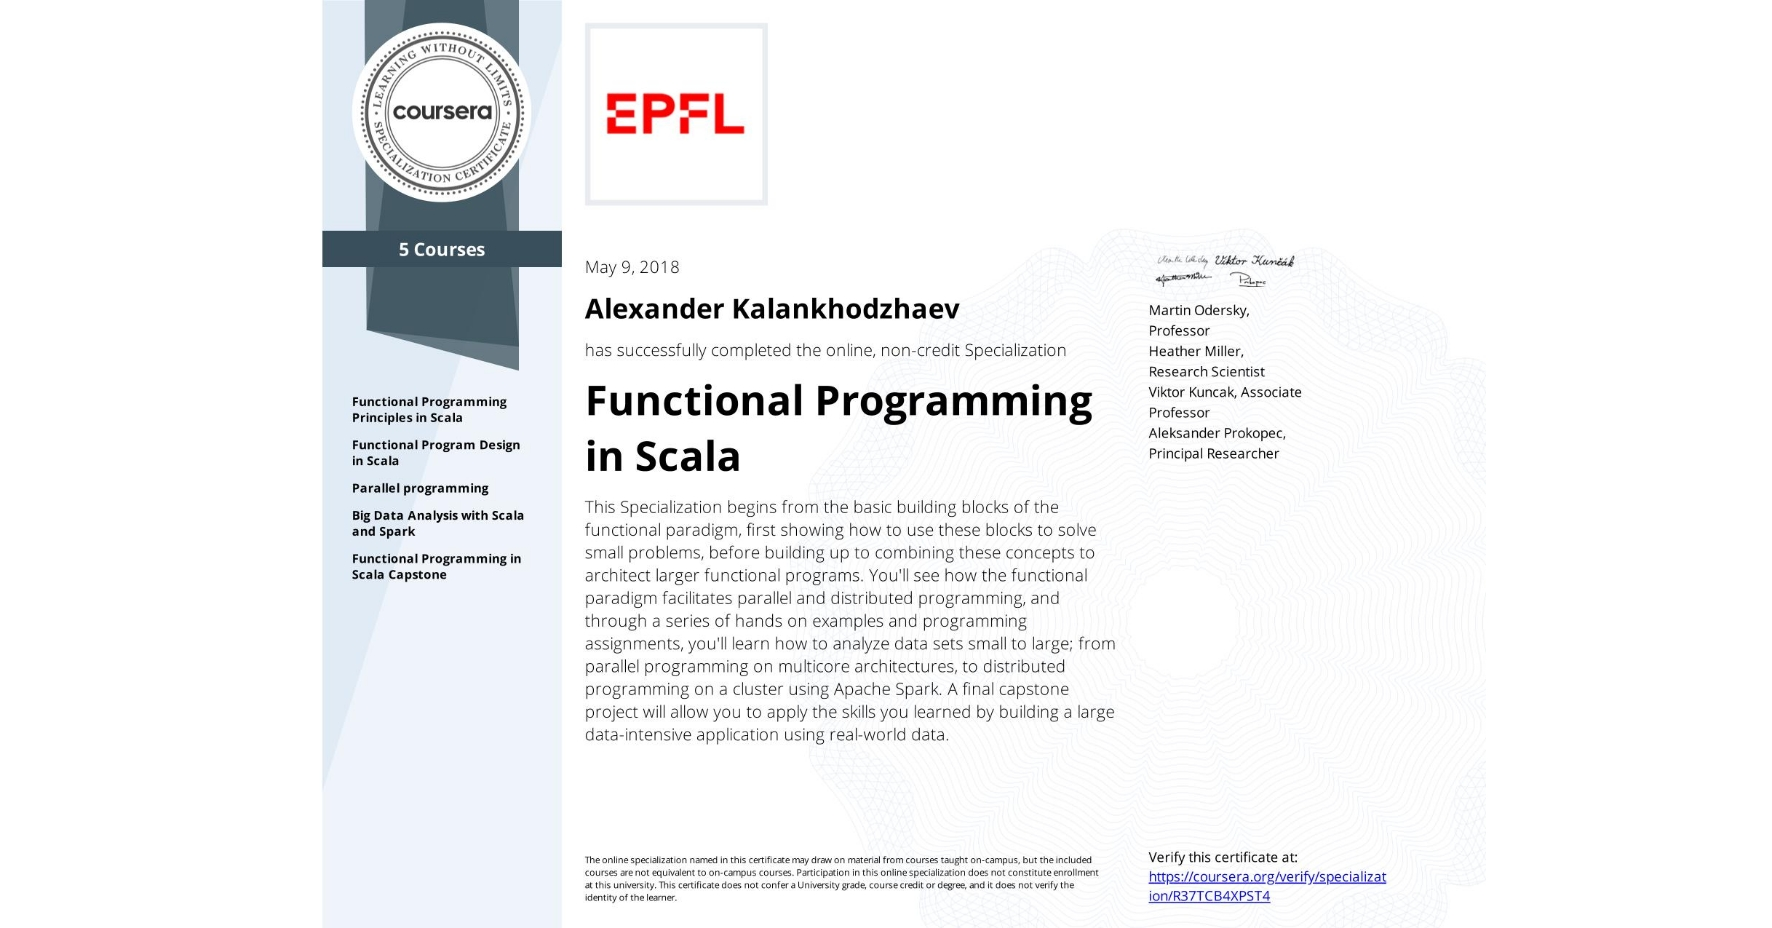 View certificate for Alexander Kalankhodzhaev, Functional Programming in Scala, offered through Coursera. This Specialization begins from the basic building blocks of the functional paradigm, first showing how to use these blocks to solve small problems, before building up to combining these concepts to architect larger functional programs. You'll see how the functional paradigm facilitates parallel and distributed programming, and through a series of hands on examples and programming assignments, you'll learn how to analyze data sets small to large; from parallel programming on multicore architectures, to distributed programming on a cluster using Apache Spark. A final capstone project will allow you to apply the skills you learned by building a large data-intensive application using real-world data.